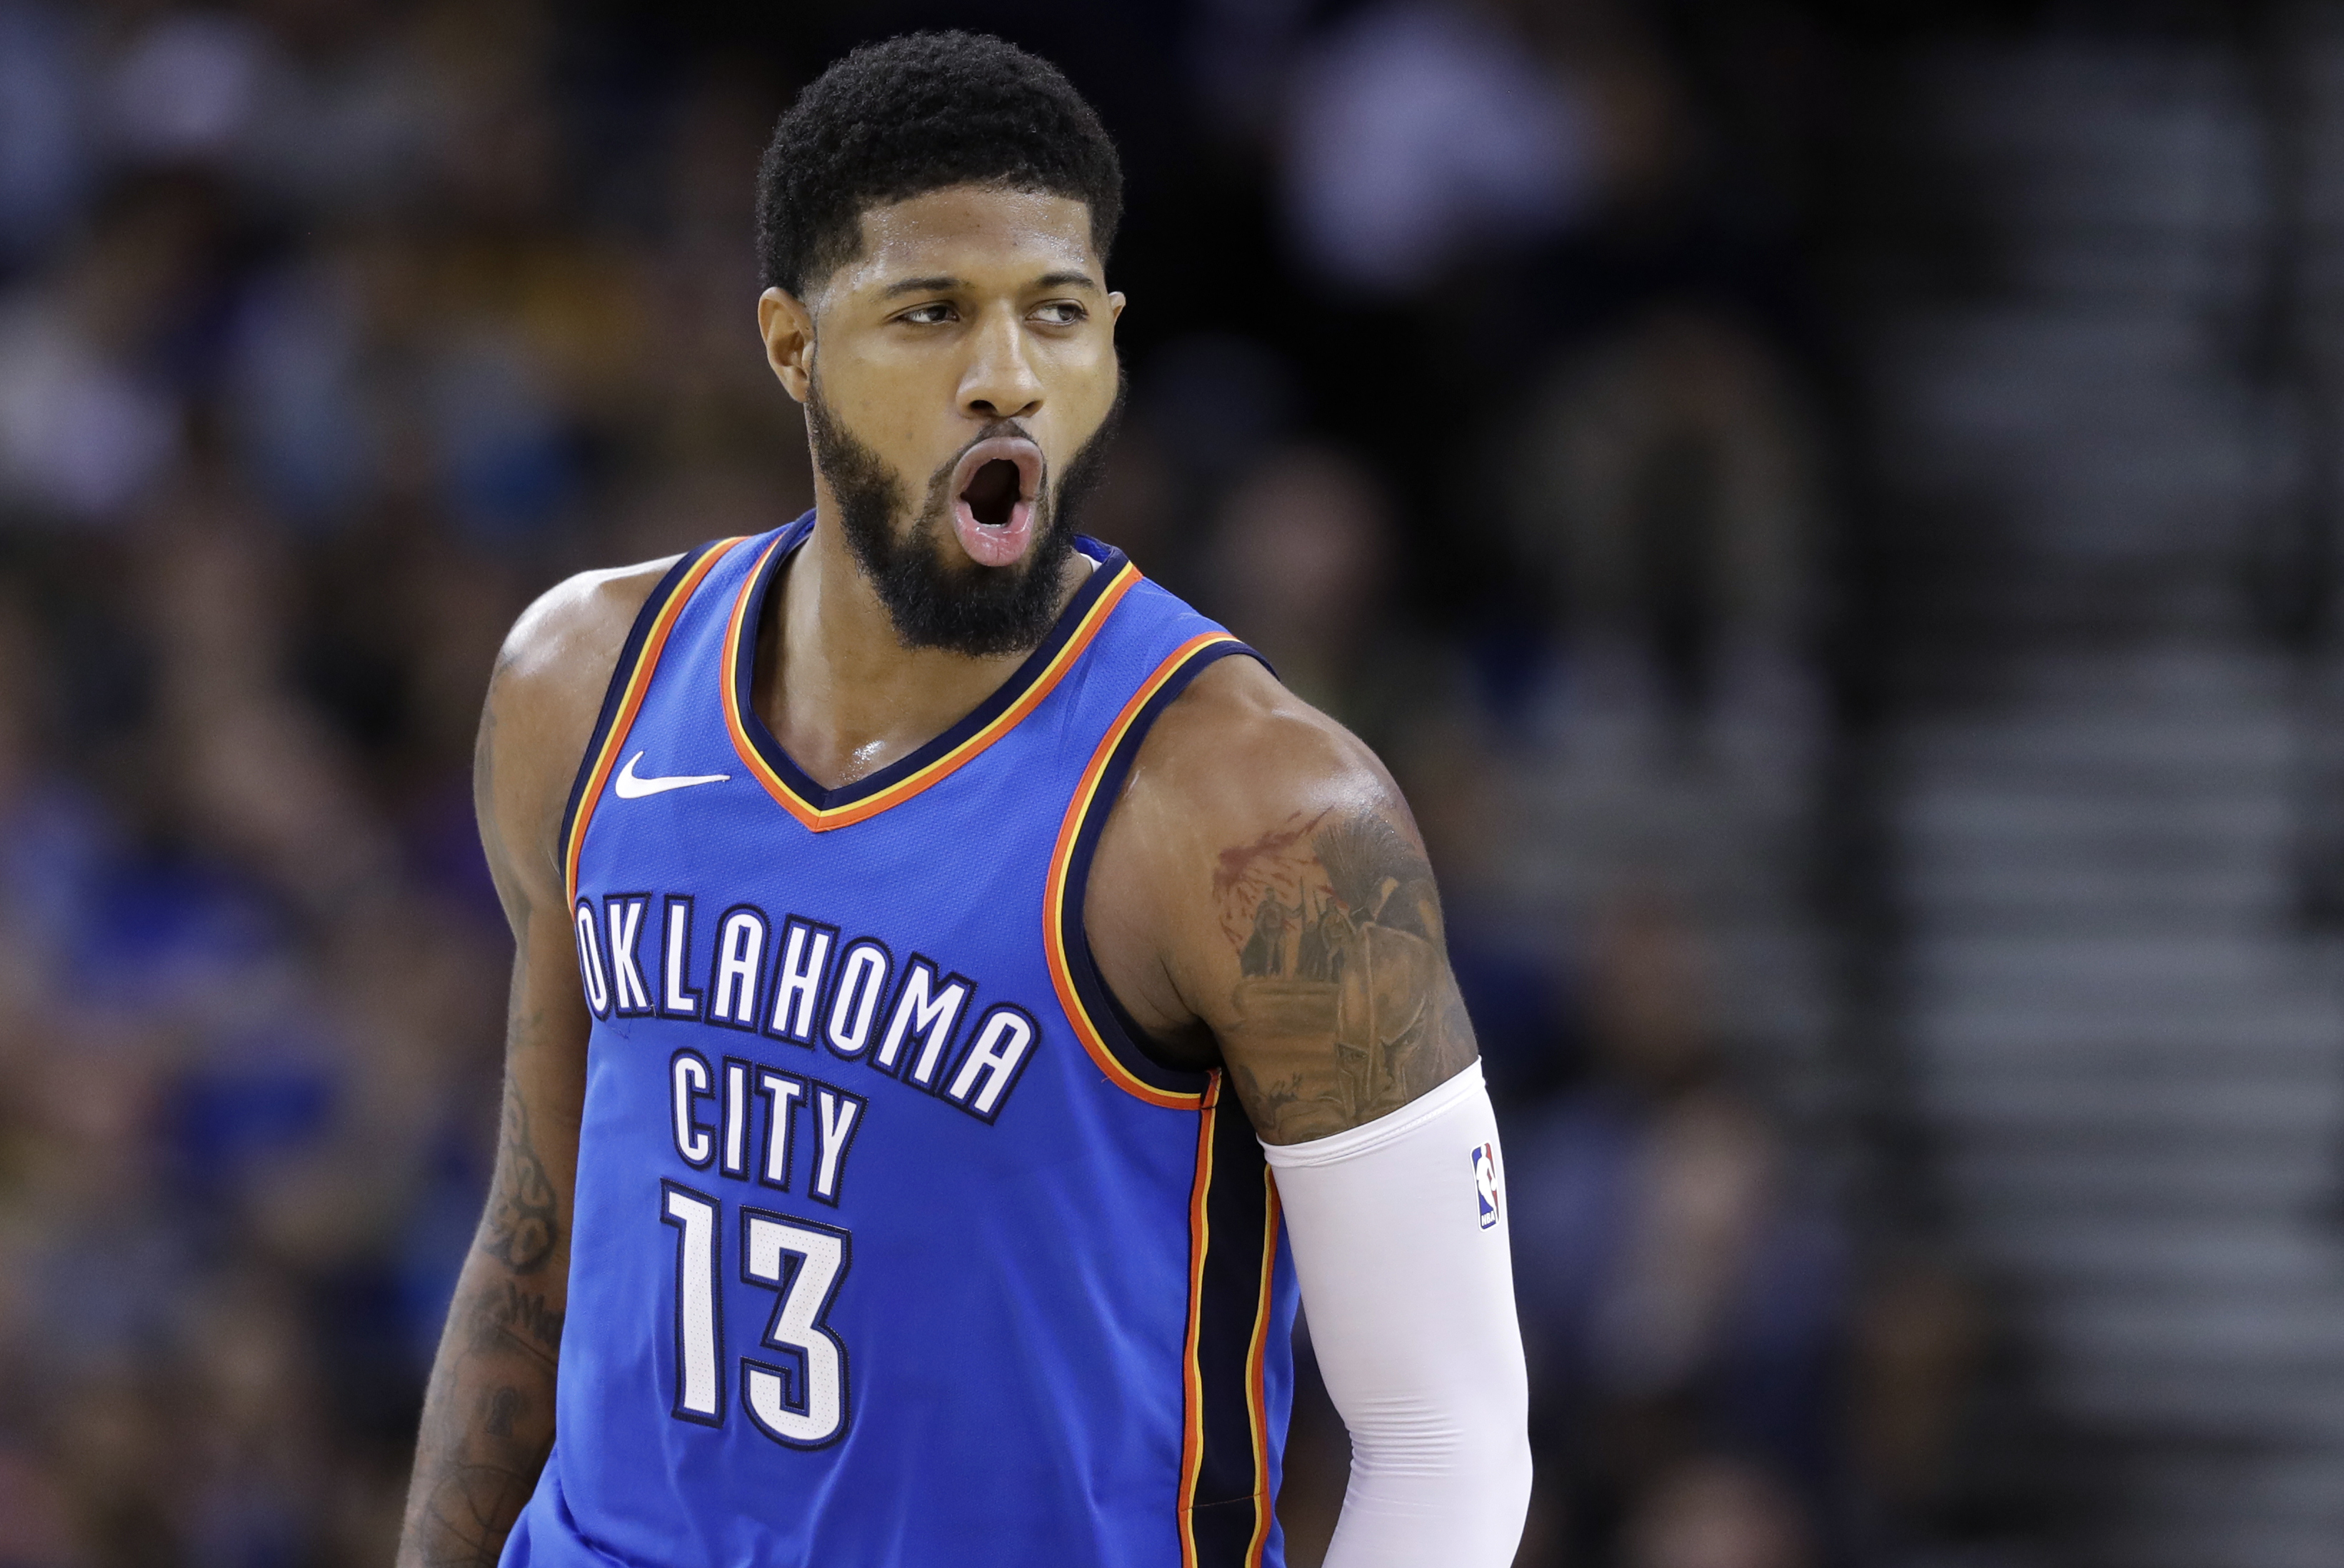 c5f855675a8 NBA Playoff Picks  First-Round Series Bets to Consider - DraftKings ...